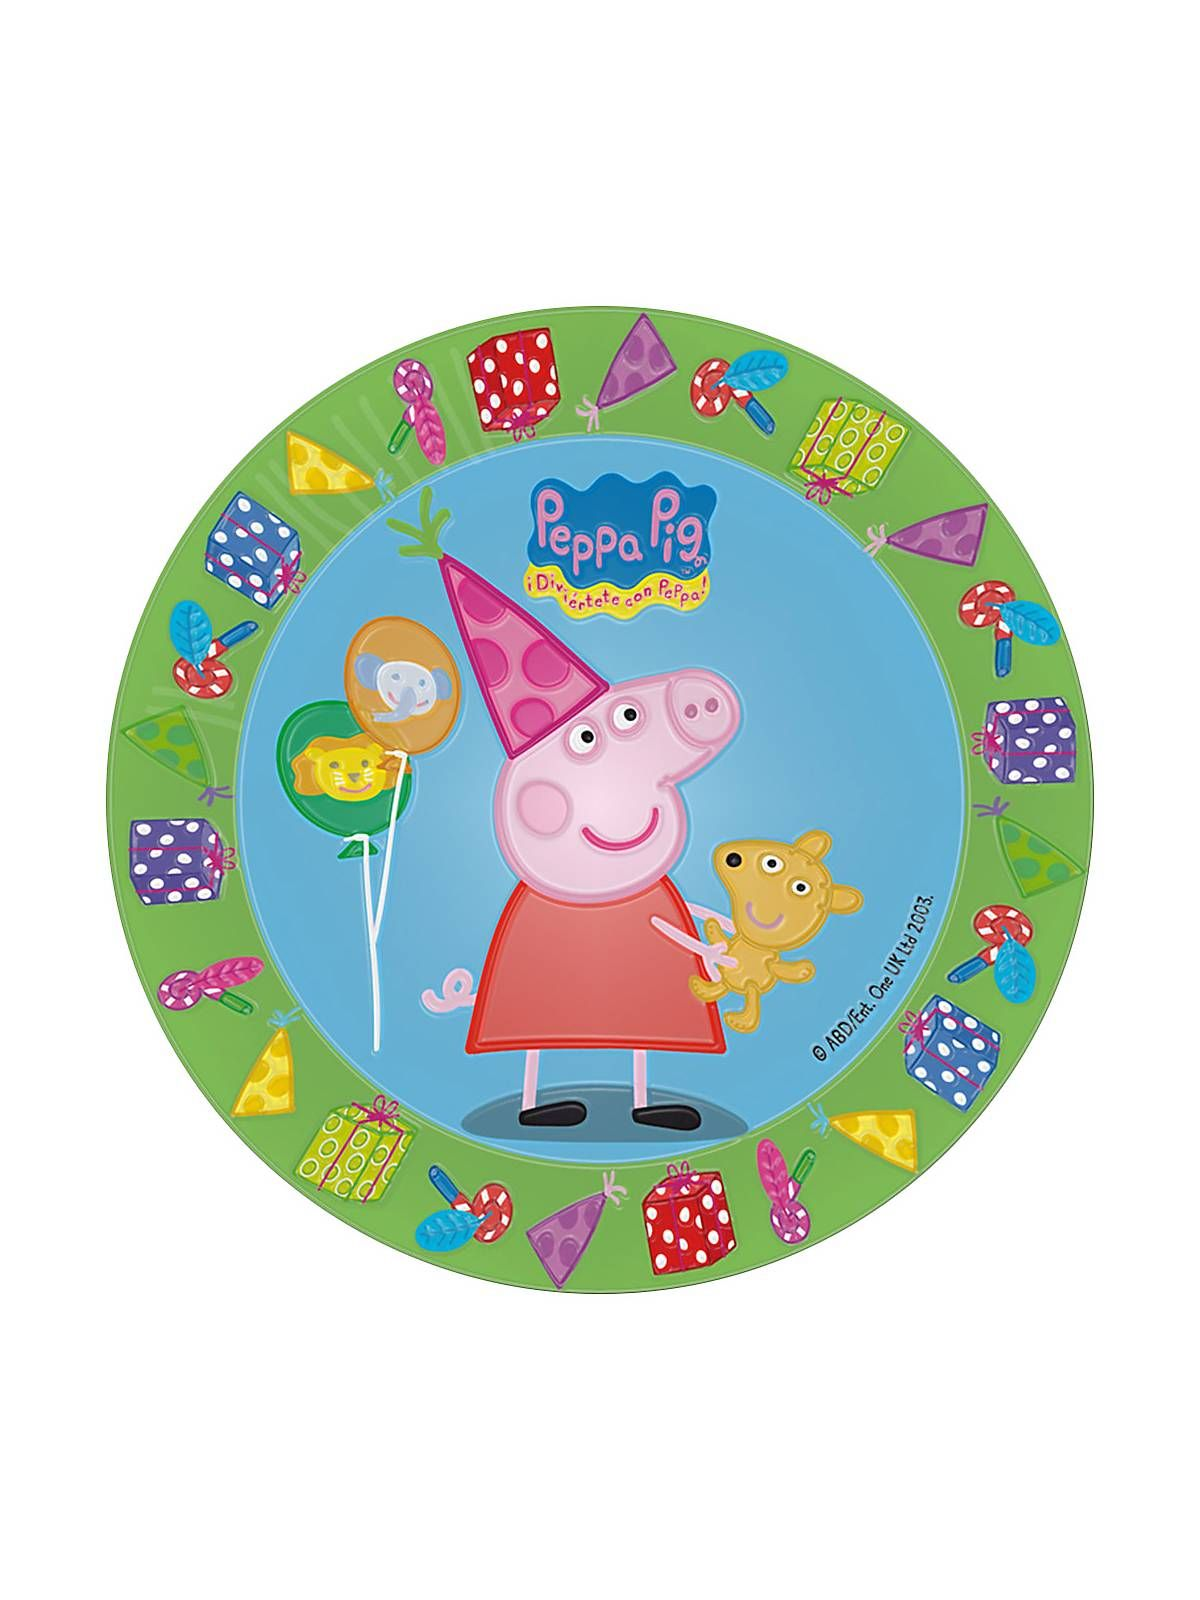 Bargain Party Decorations Peppa Pig 7 Cake Plates Bargain Themed Tableware Decorations